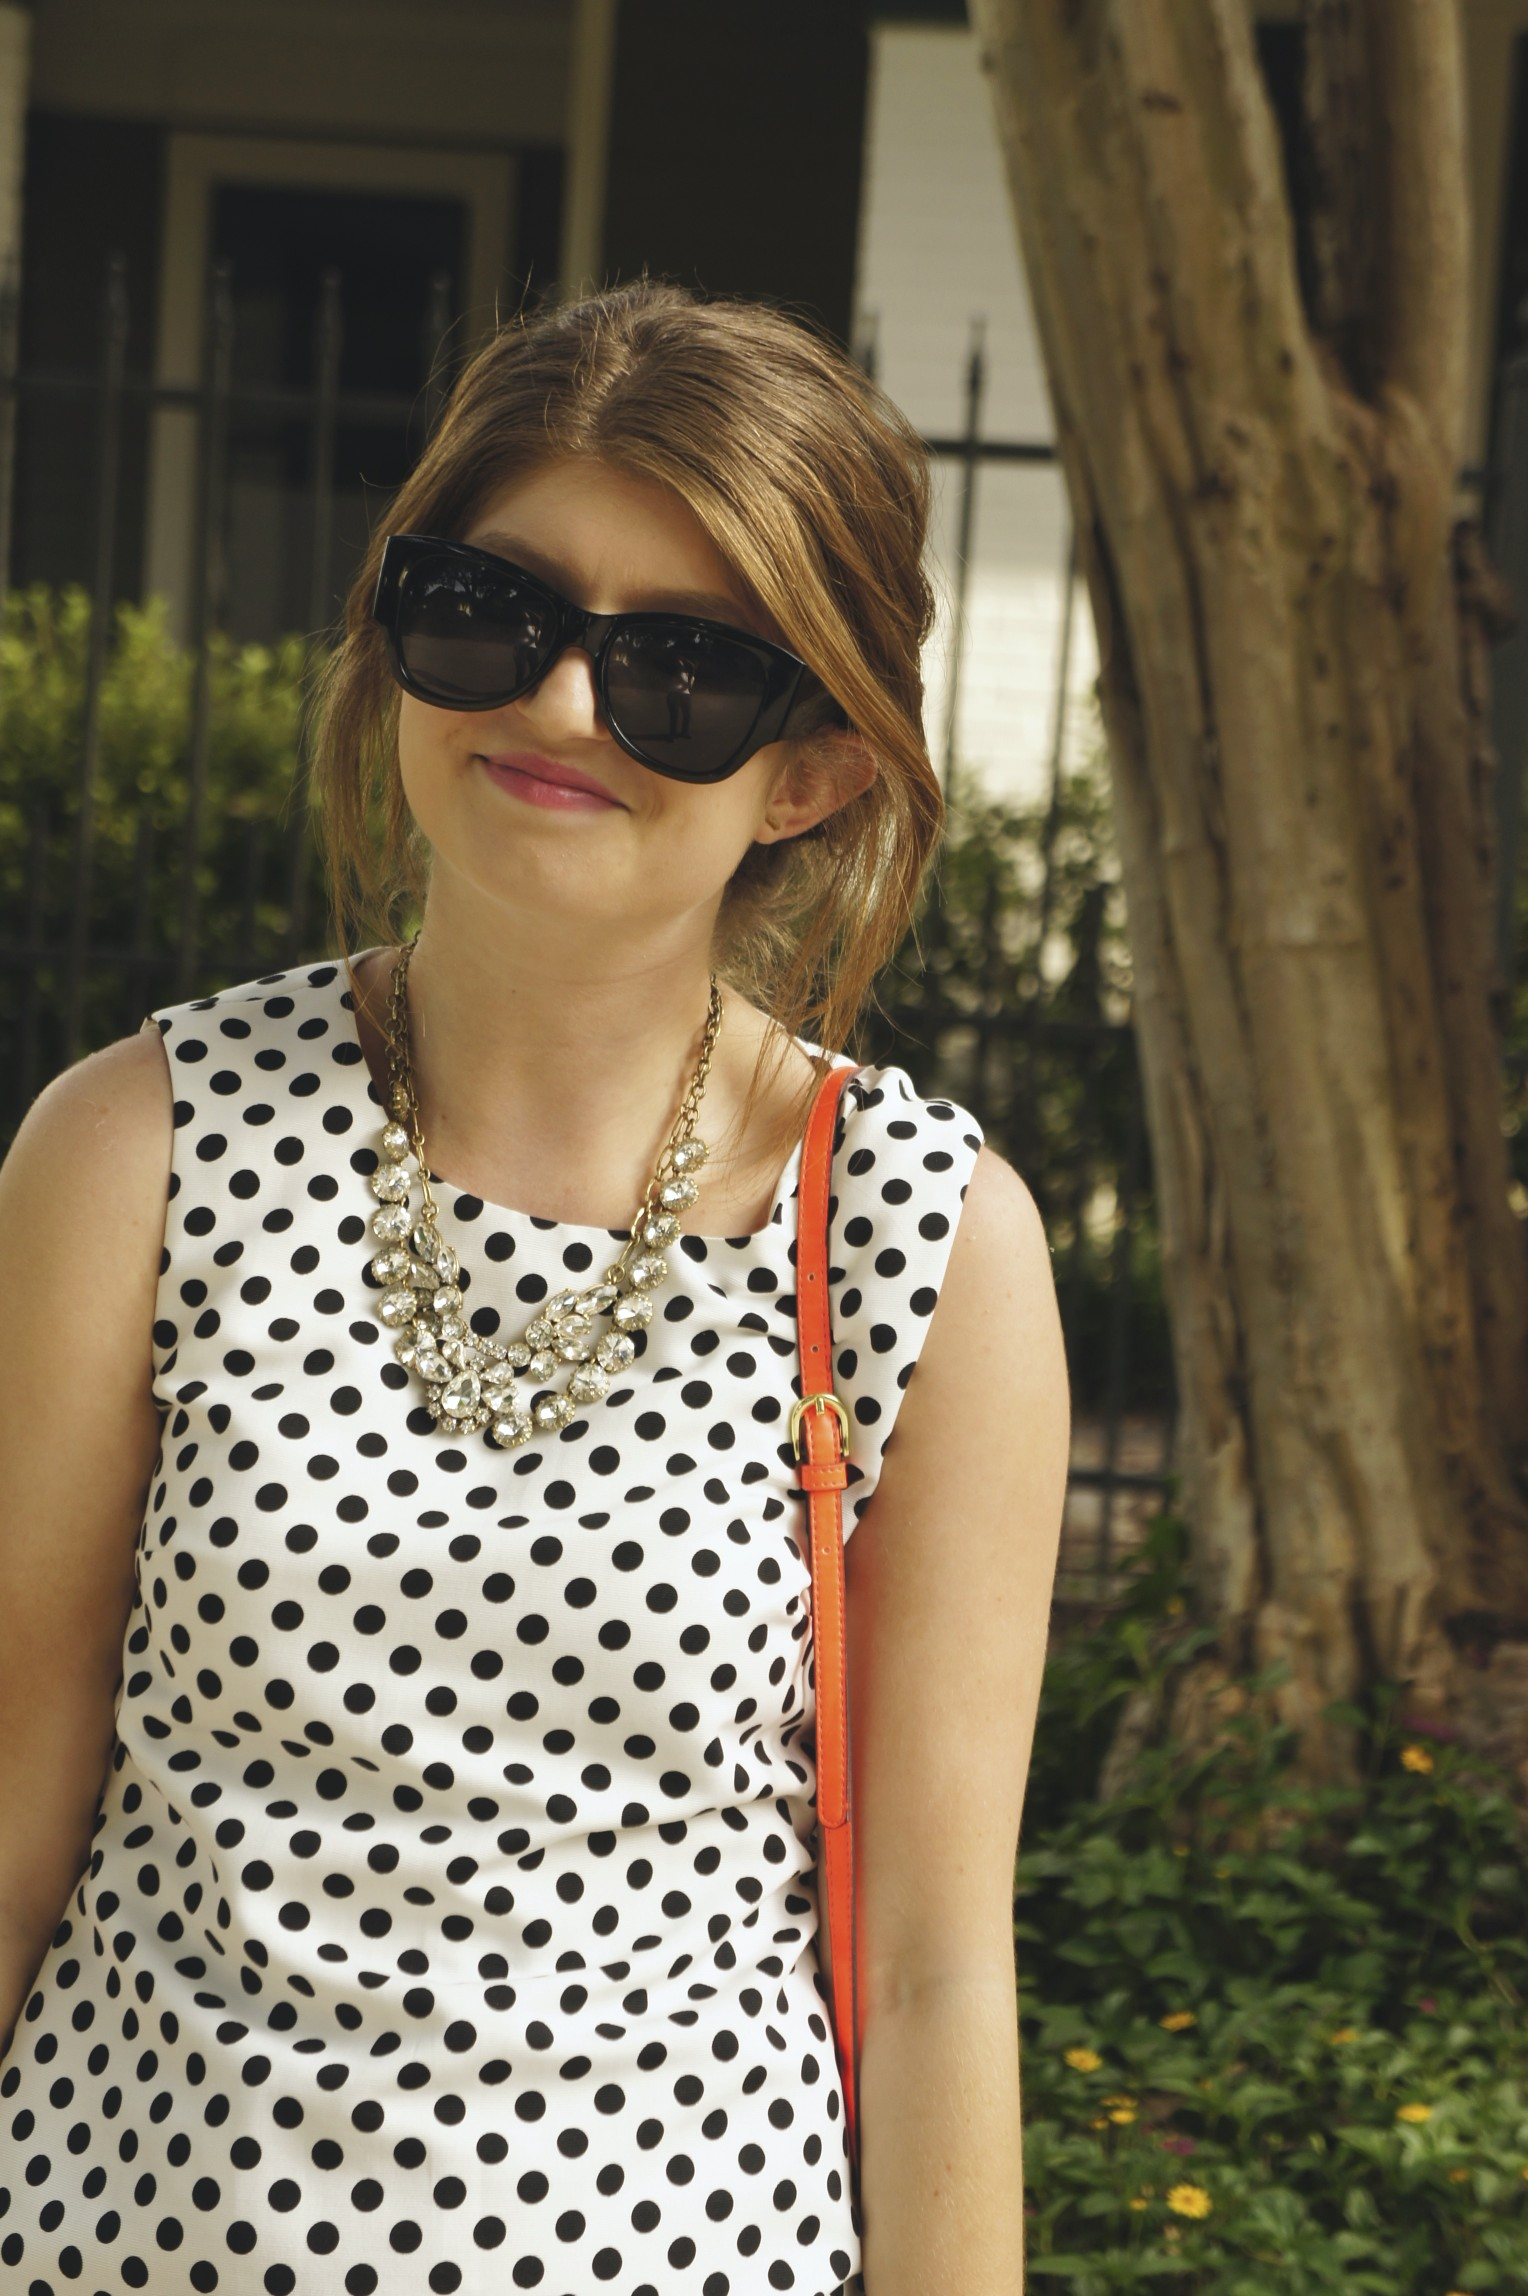 Outfit: Itty Bitty Polka Dot